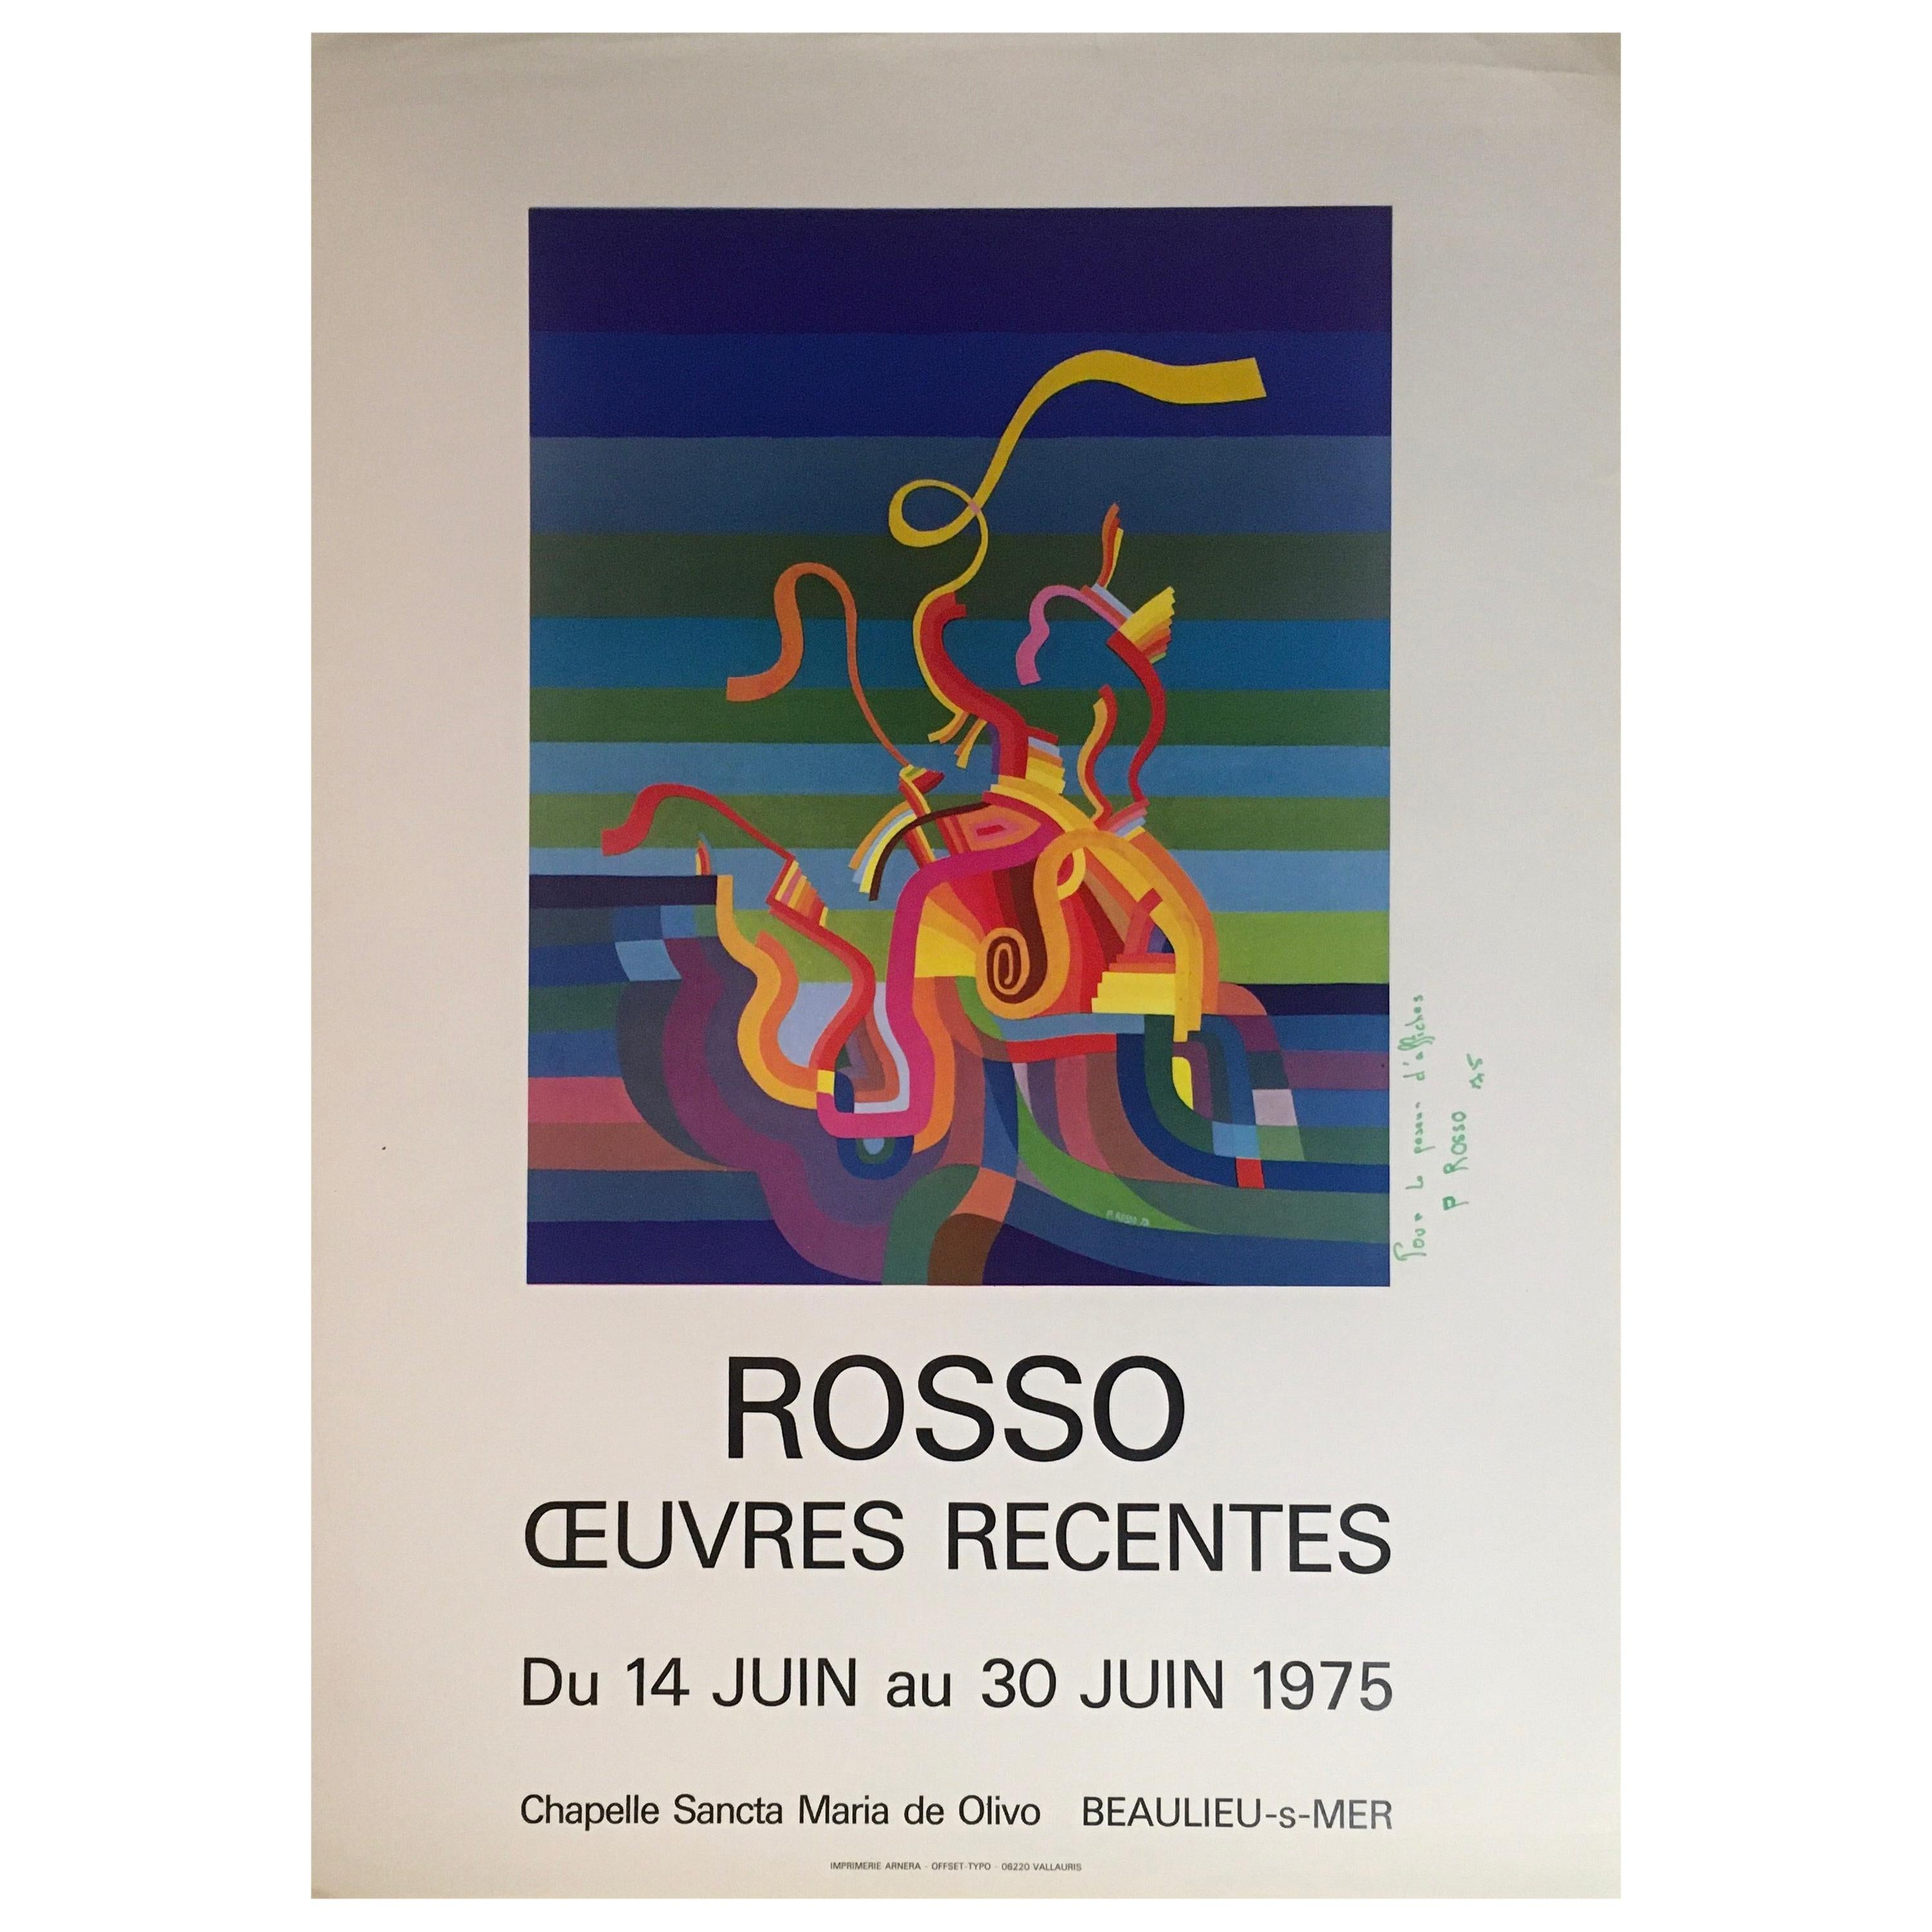 Original Midcentury Abstract Art Exhibition Poster, Signed Rosso Dated 1975